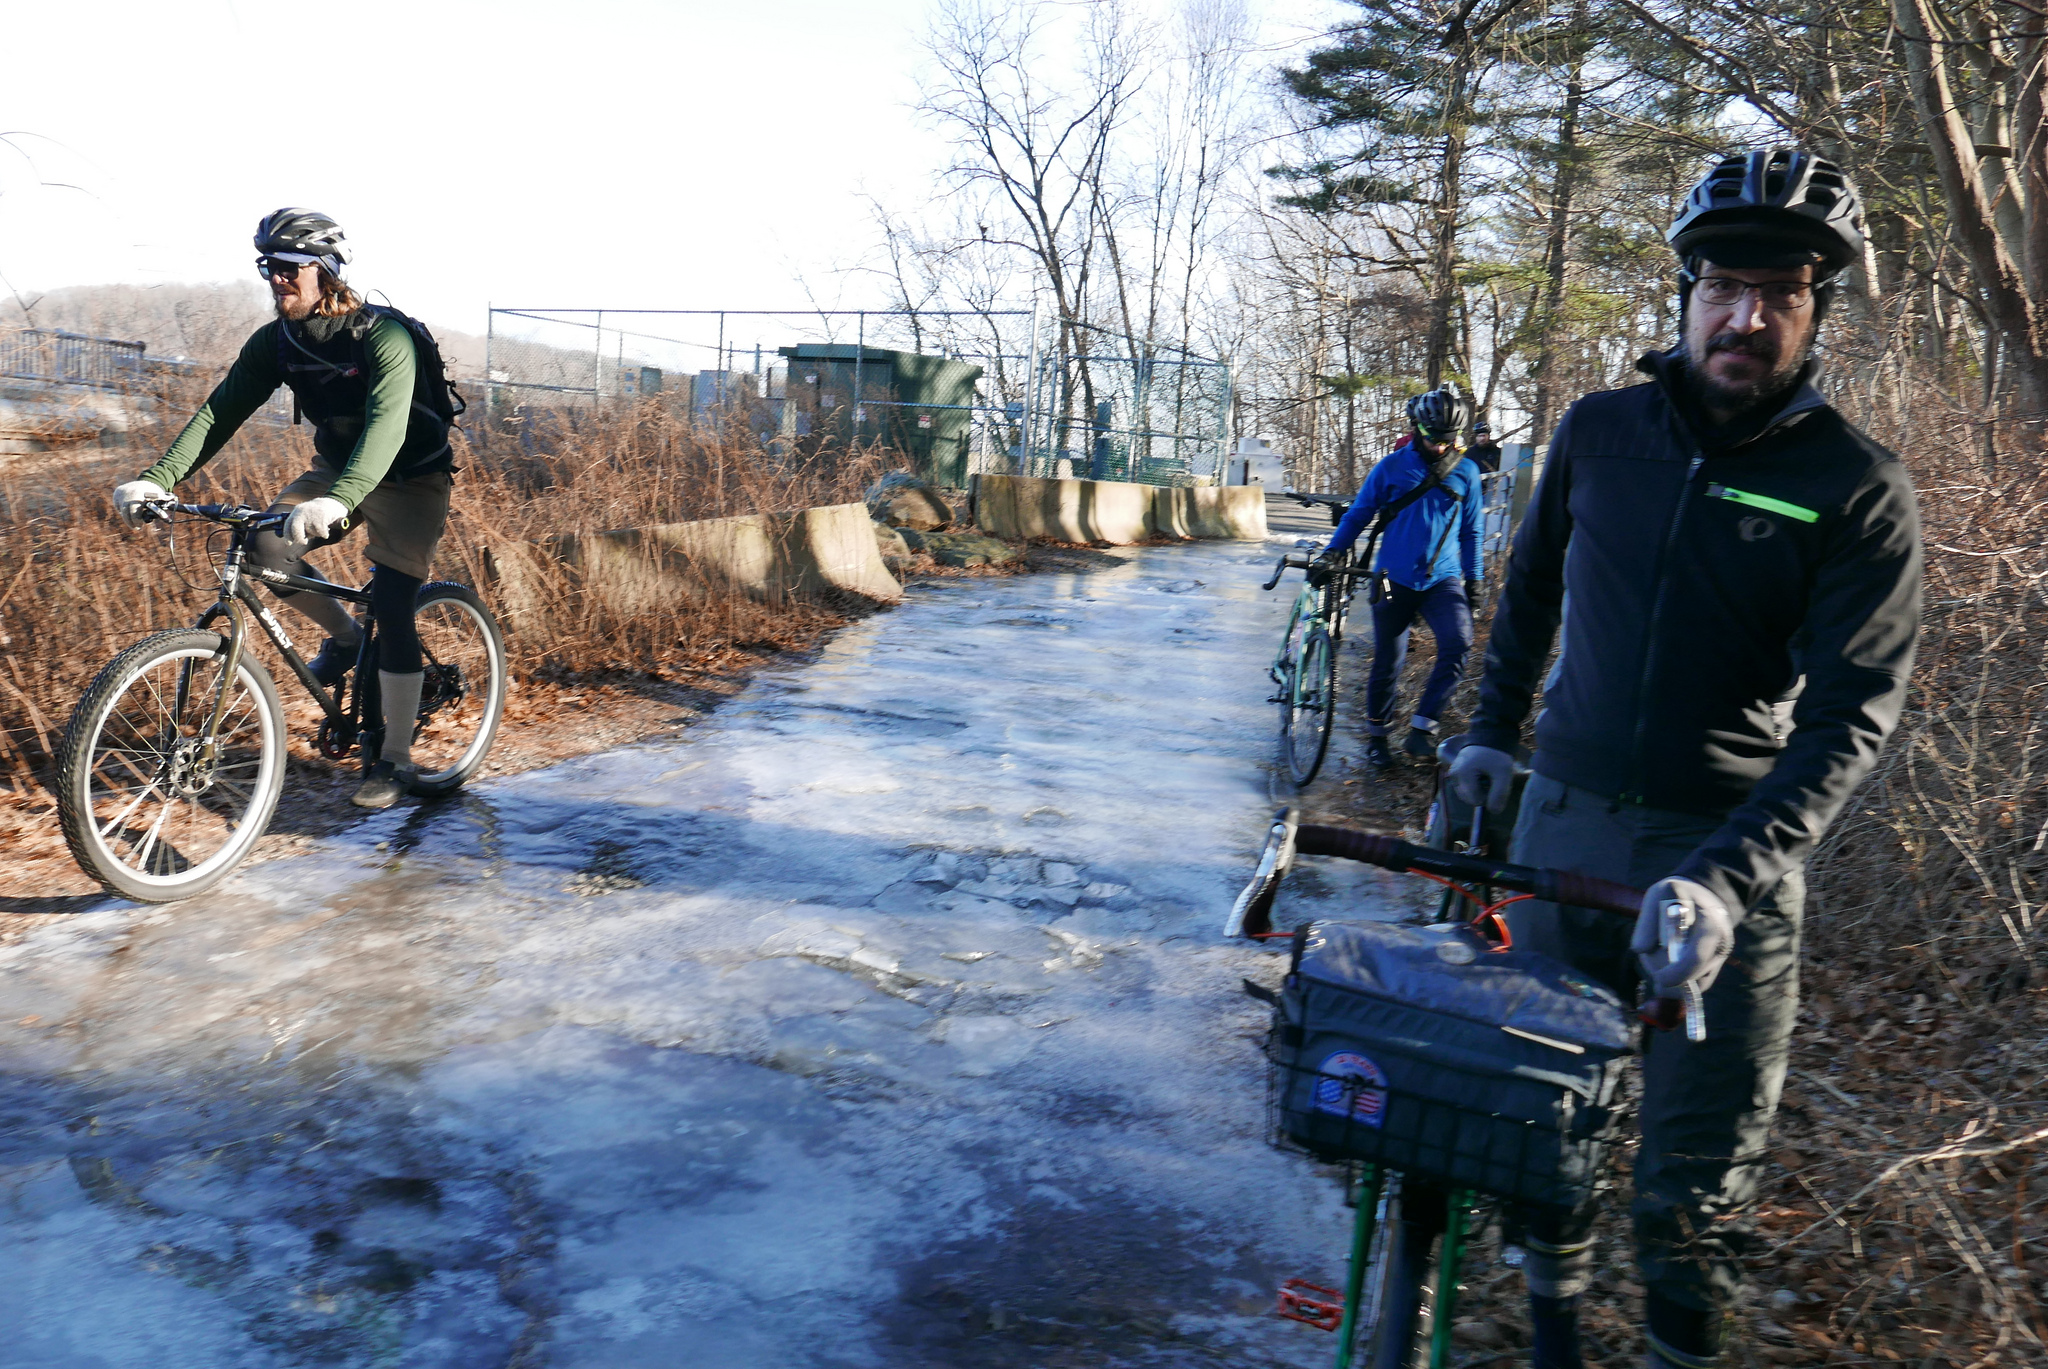 Aaron and His Surly Karate Monkey takes on the ice.